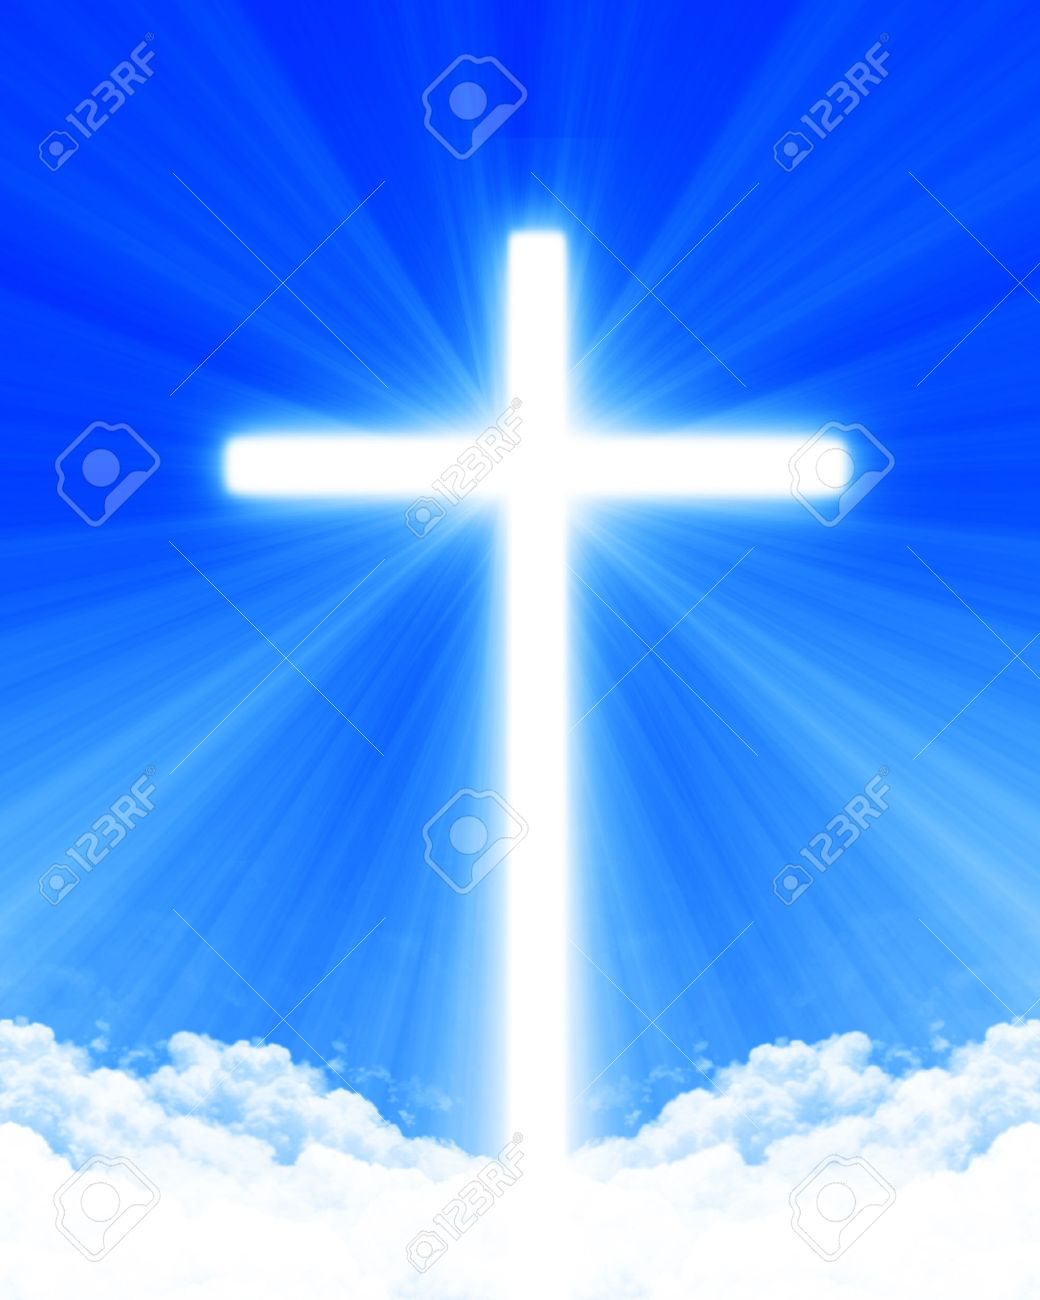 Bright glowing cross in the clouds - 1726907